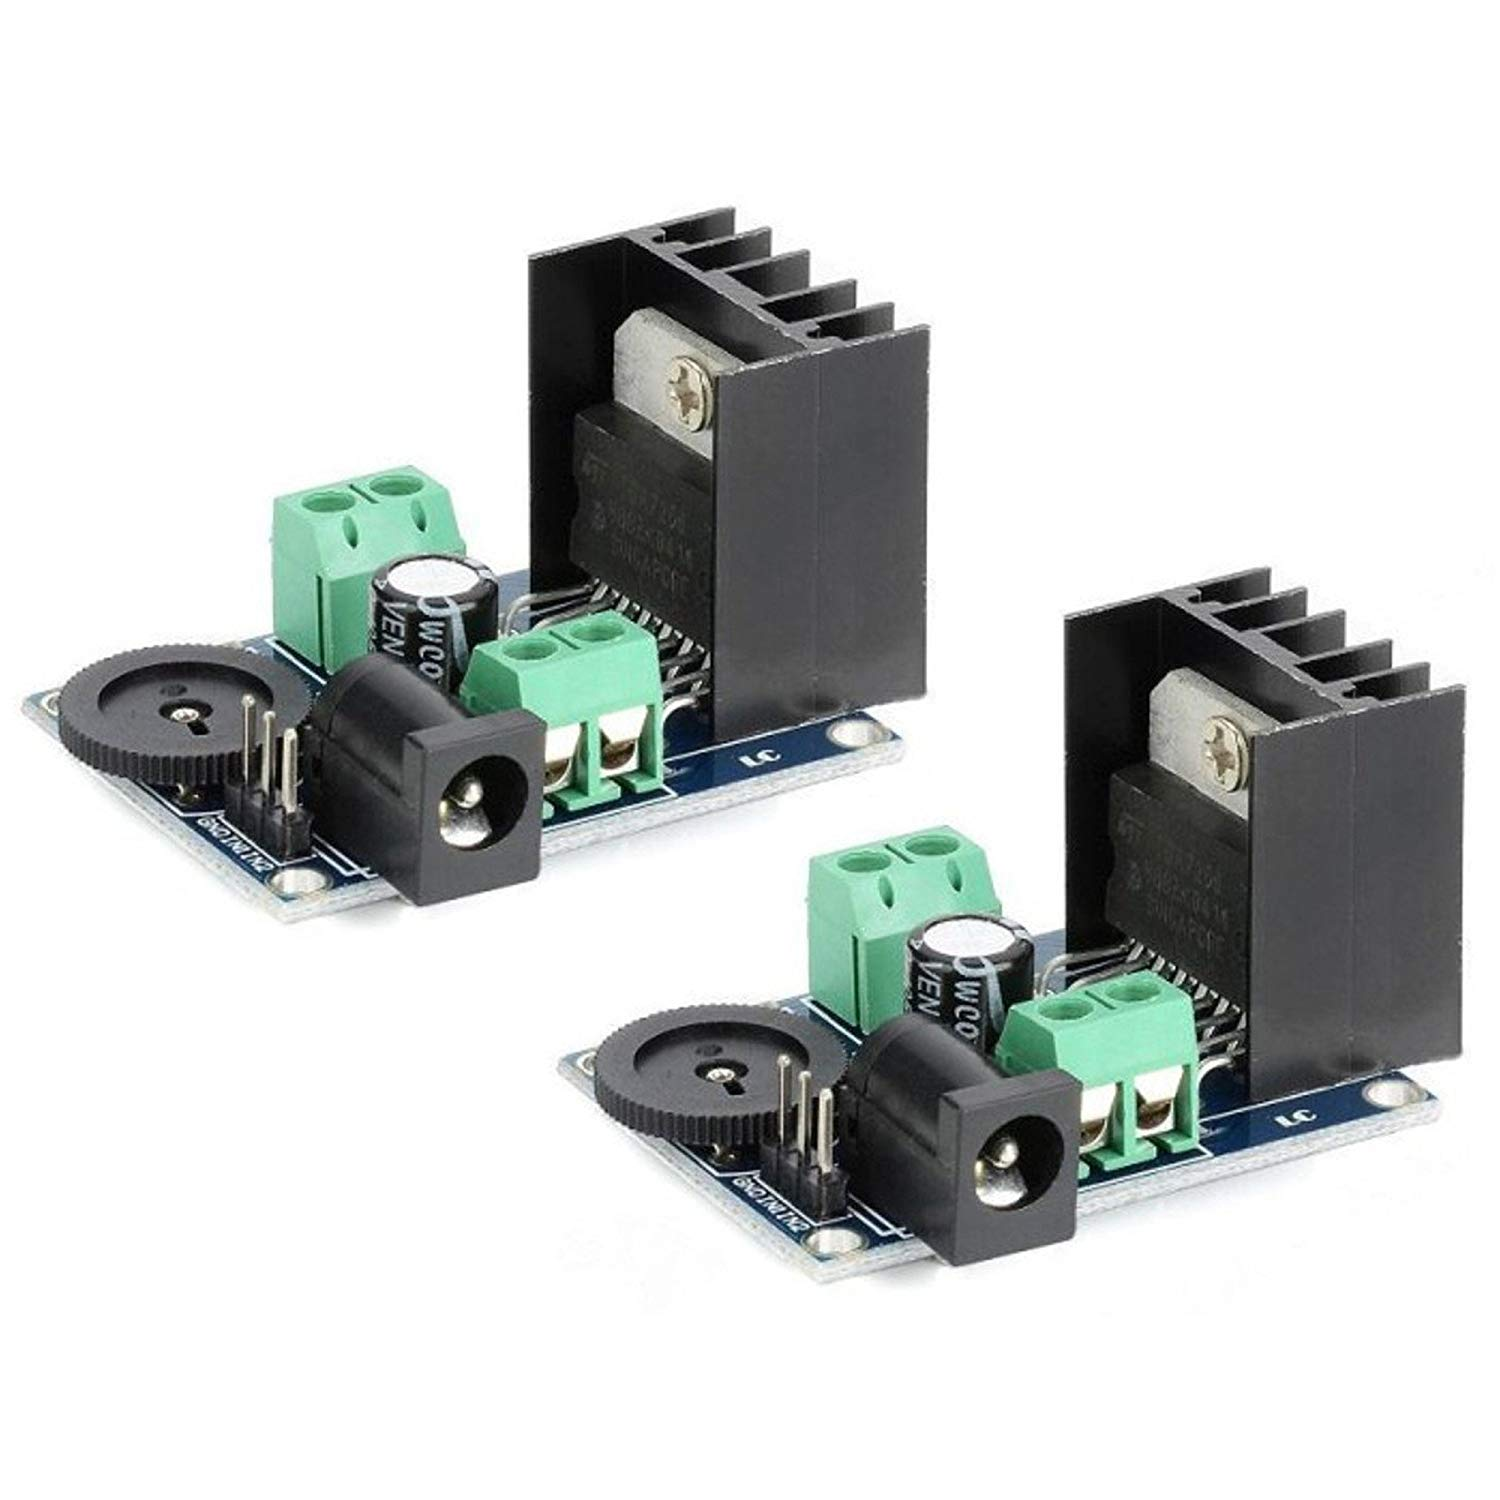 Cheap Tda Audio Amplifier Find Deals On Line At Tda2002 8w Car Radio Power Get Quotations Optimus Electric 2pcs Tda7266 Module Dual Channel From